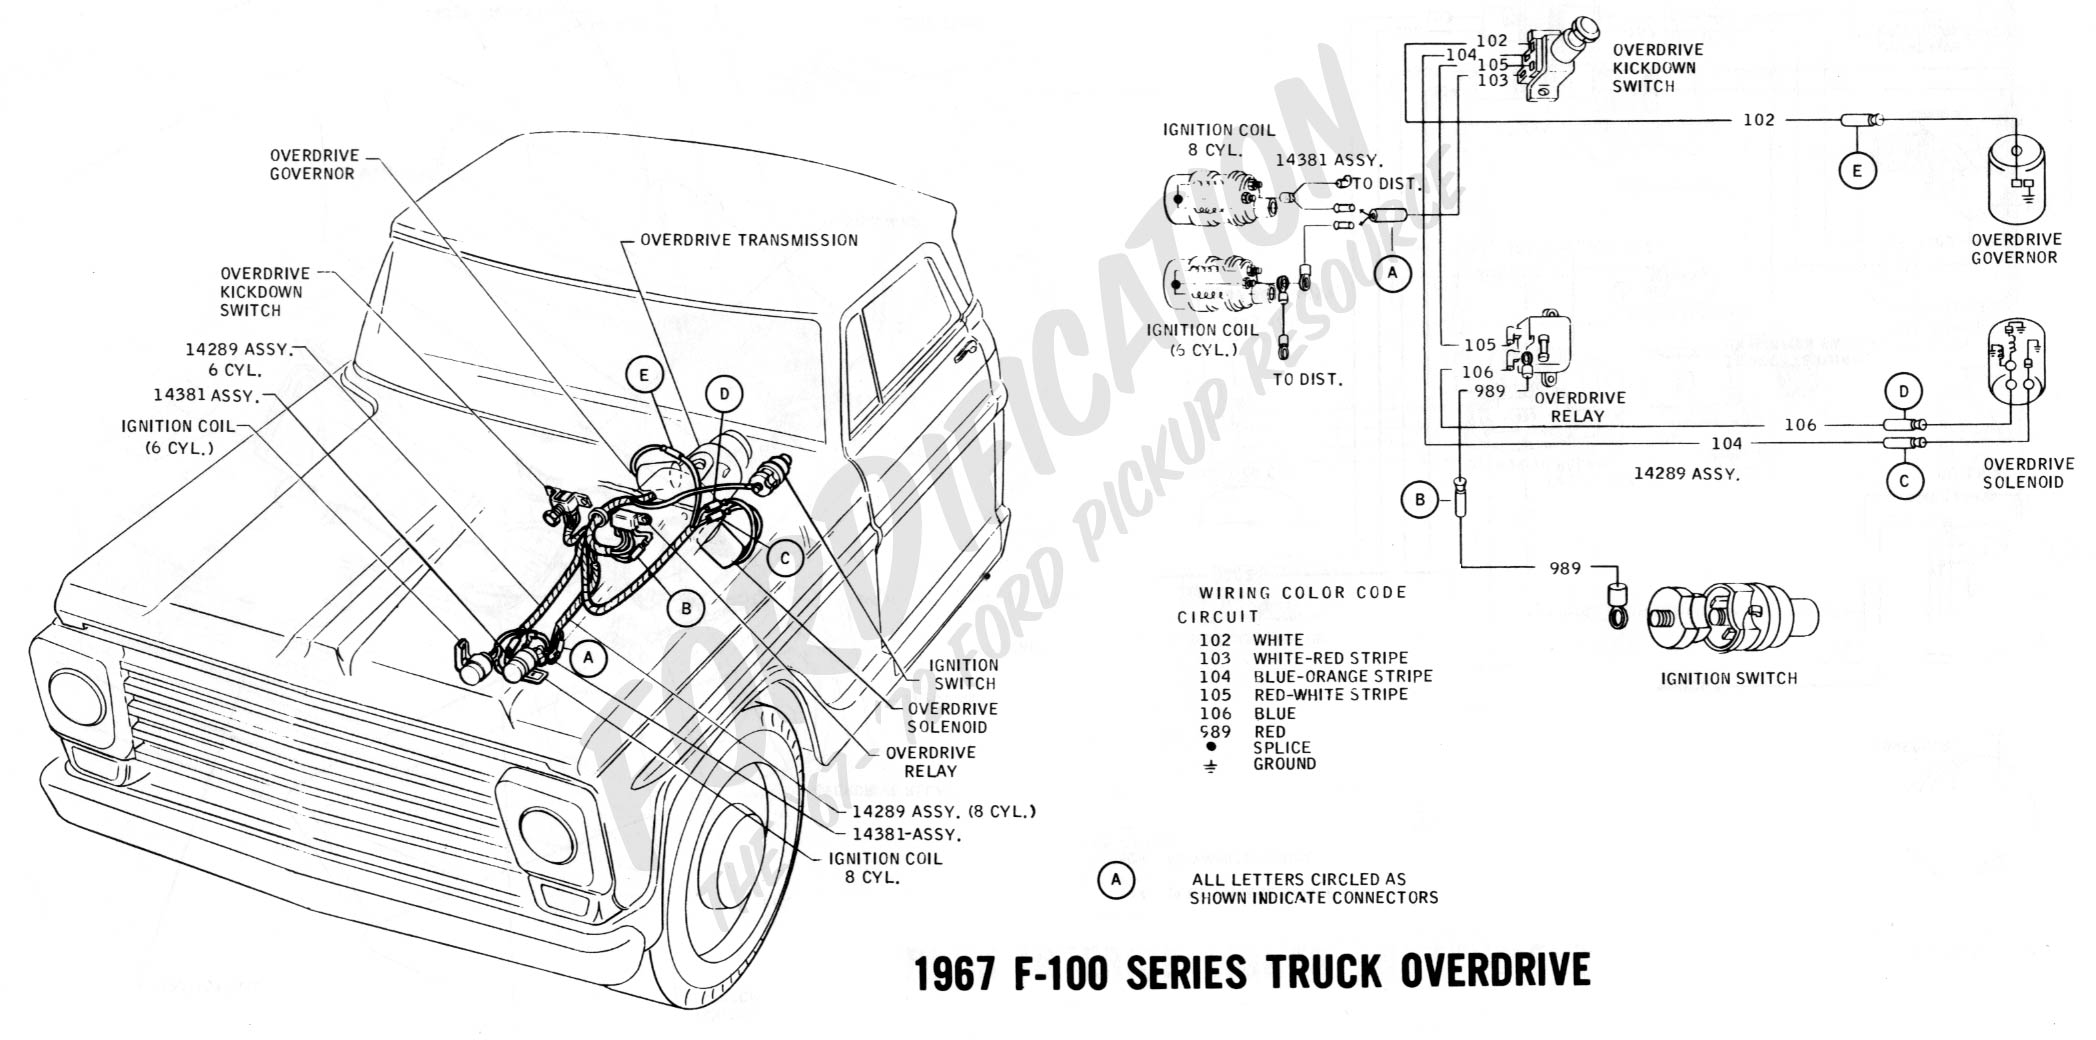 1967 ford f100 fuse box diagram wiring diagram